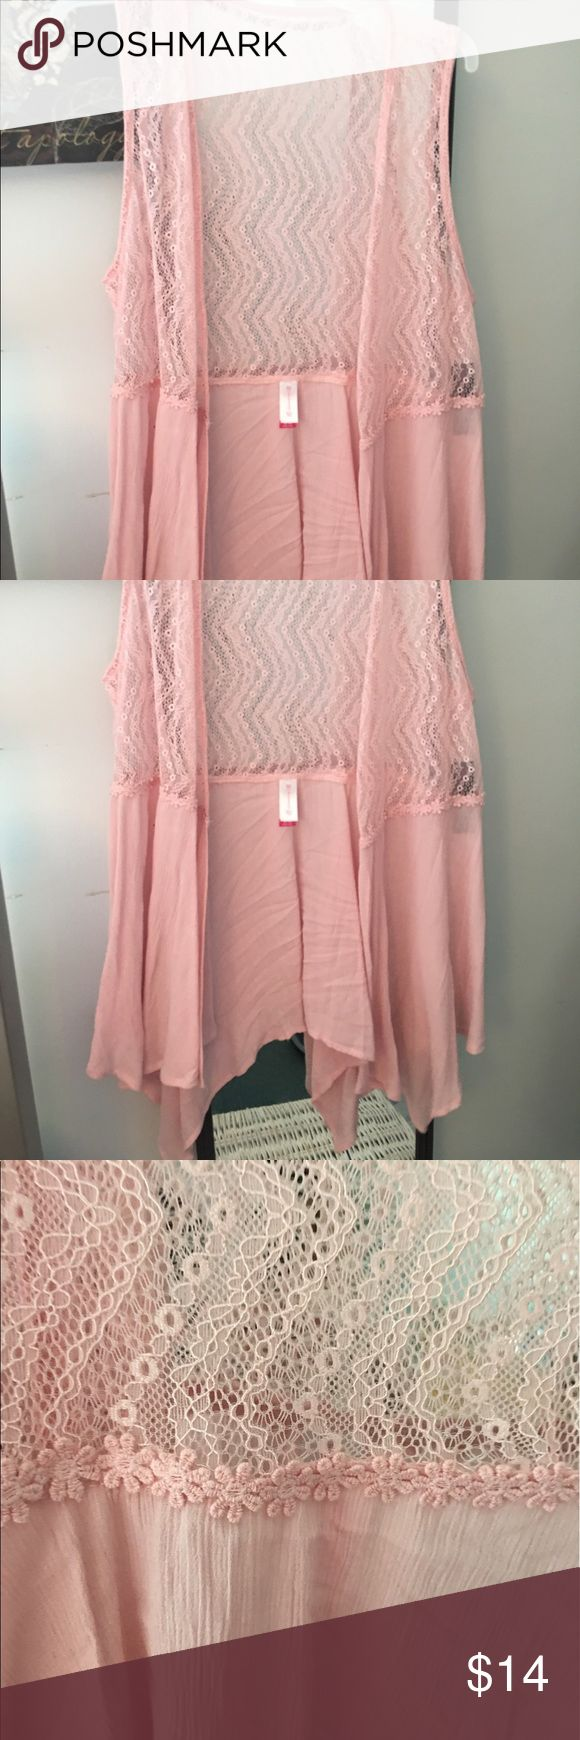 Beautiful sheer pink vest/over shirt Super cute when worn over a tank top. Brand new without tags. Lovely floral design and pretty pink color. Very summery and hip. No Boundaries Tops Blouses